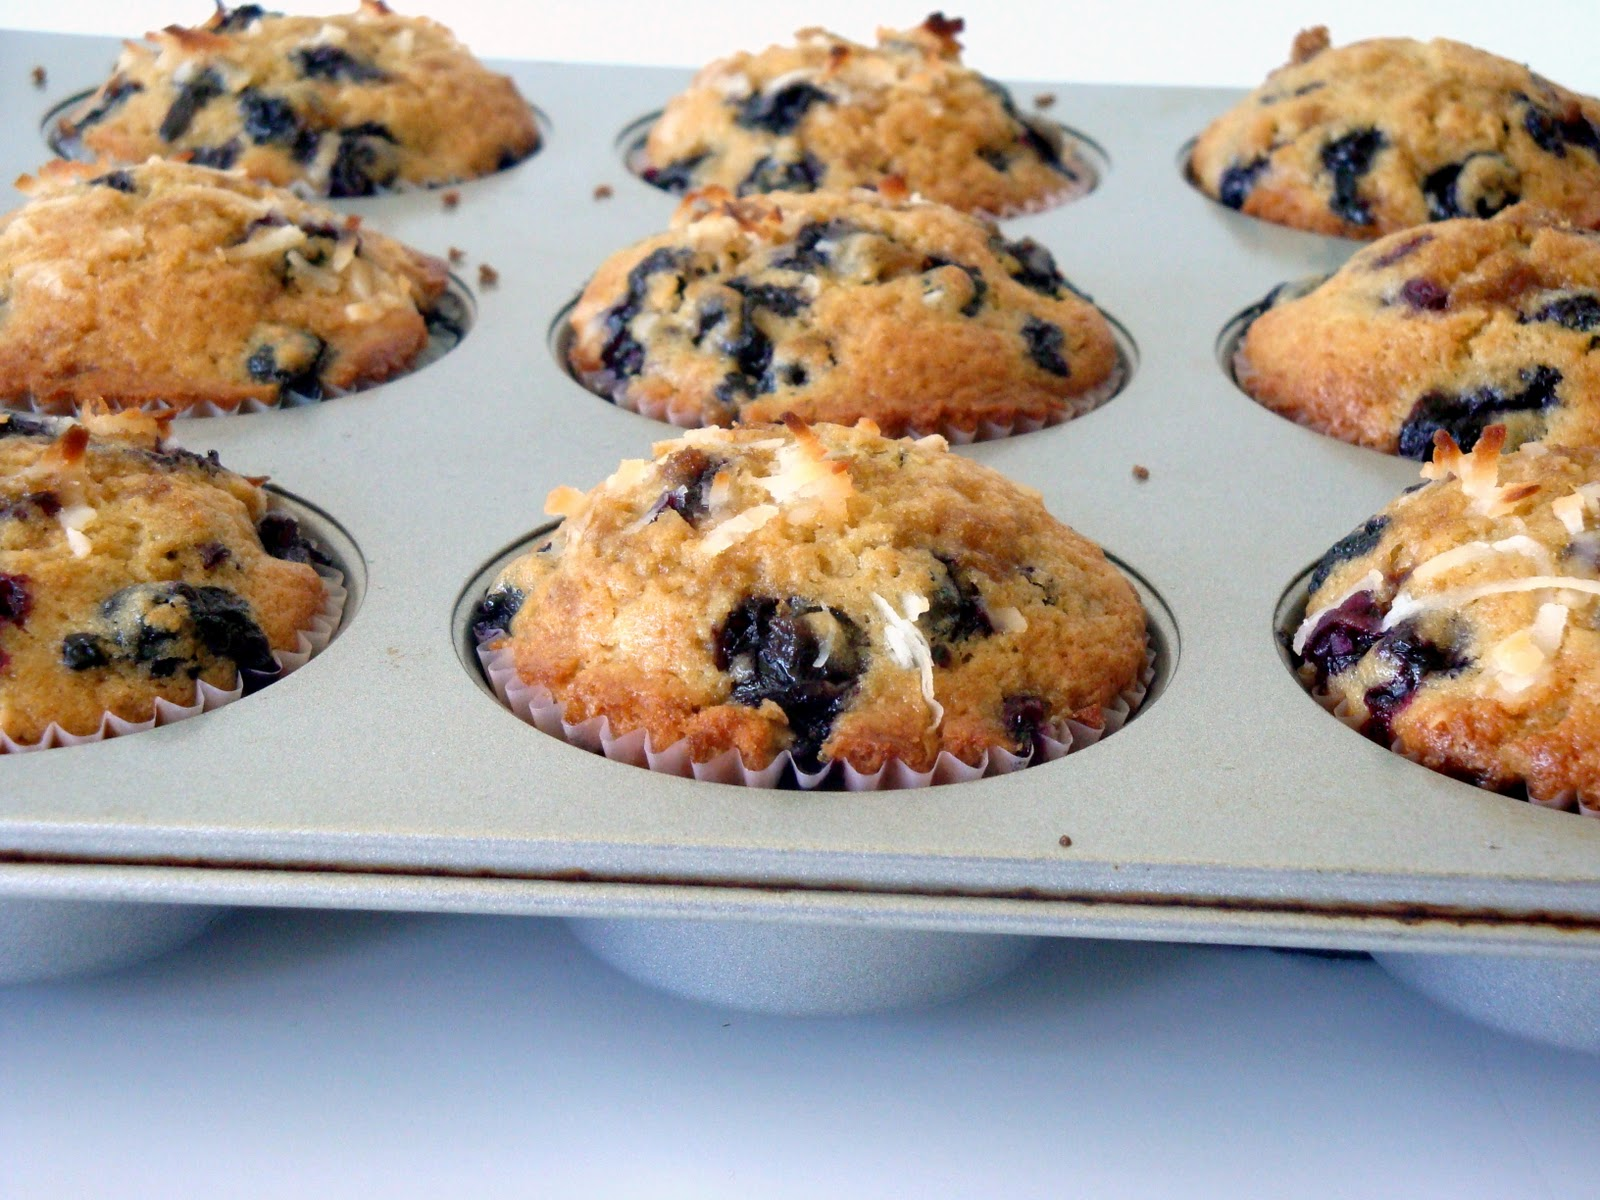 Brown Sugar Coconut Blueberry Muffins - Alida's Kitchen